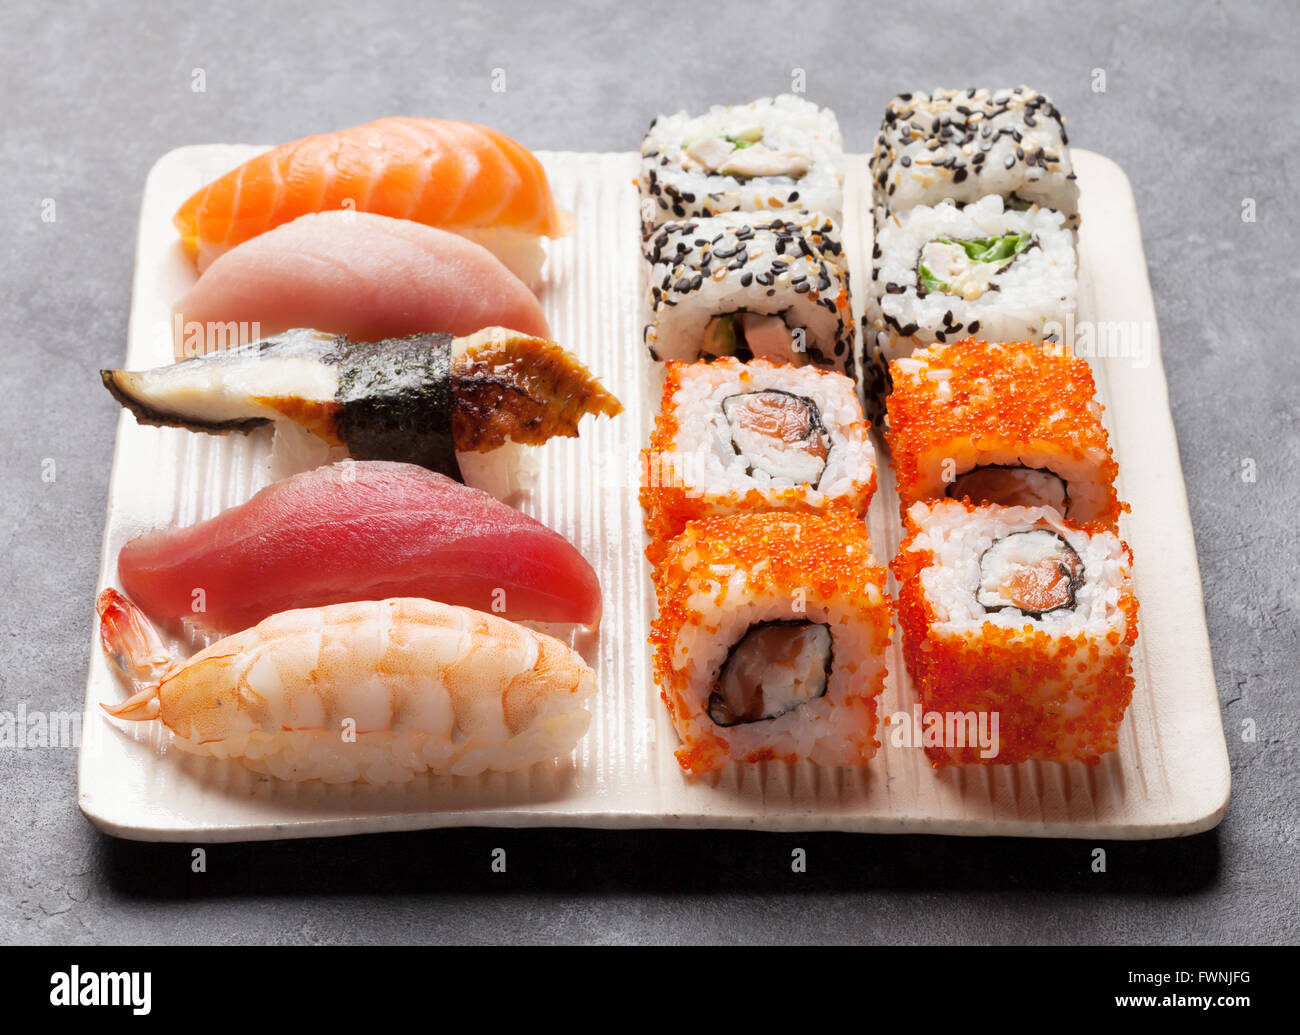 Set of sushi and maki roll on stone table - Stock Image